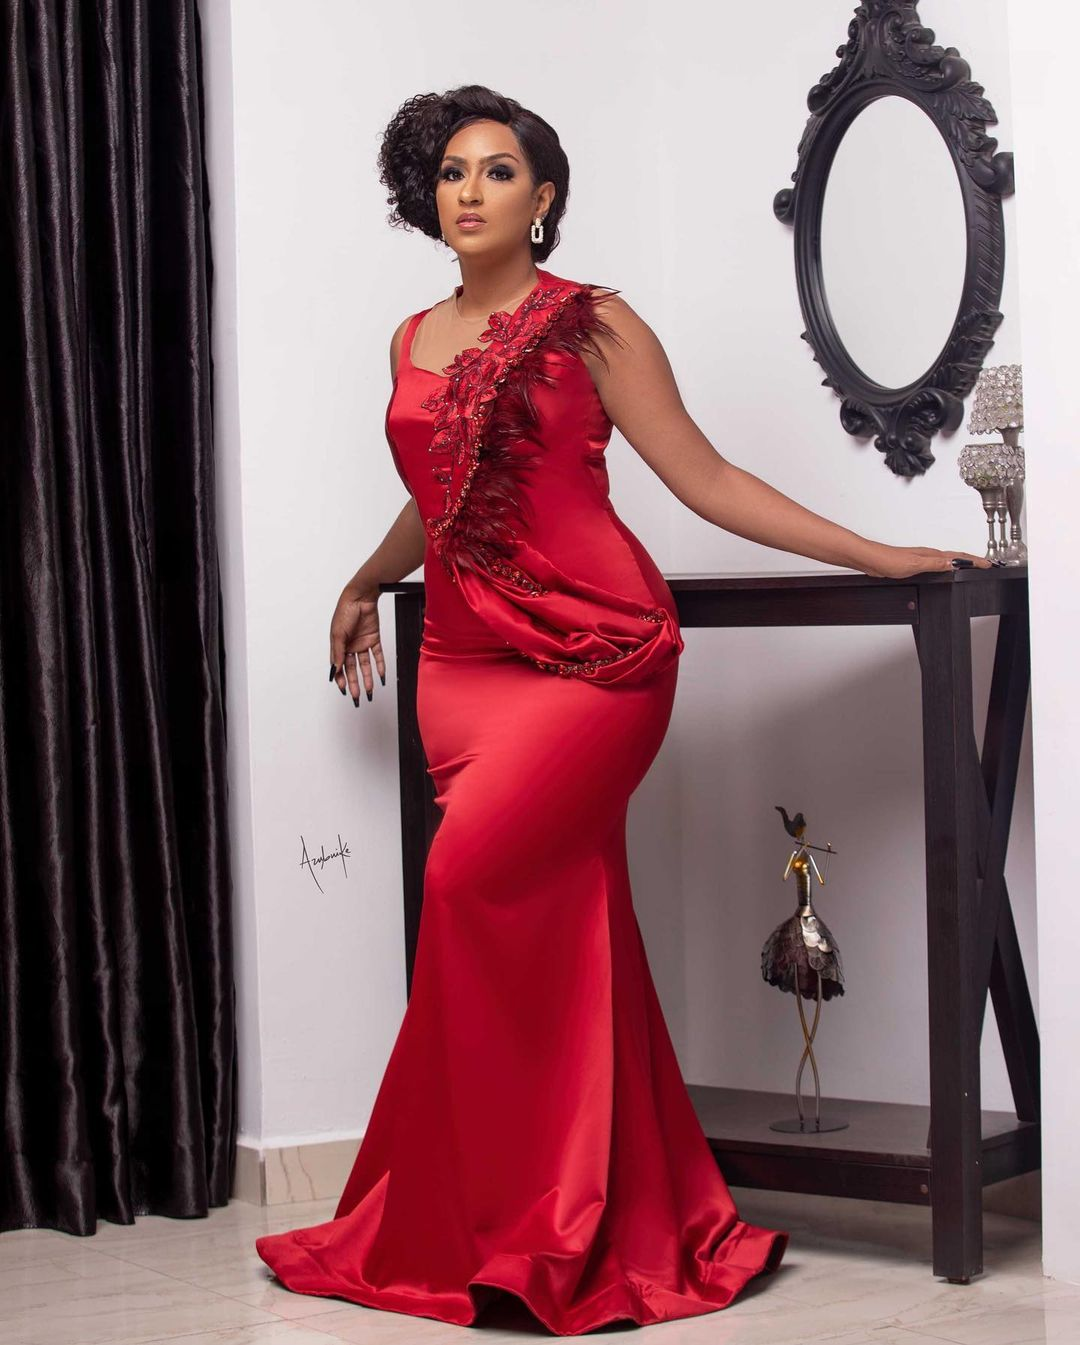 Juliet Ibrahim Flashing Red Dress Is Find Fit For Xmas